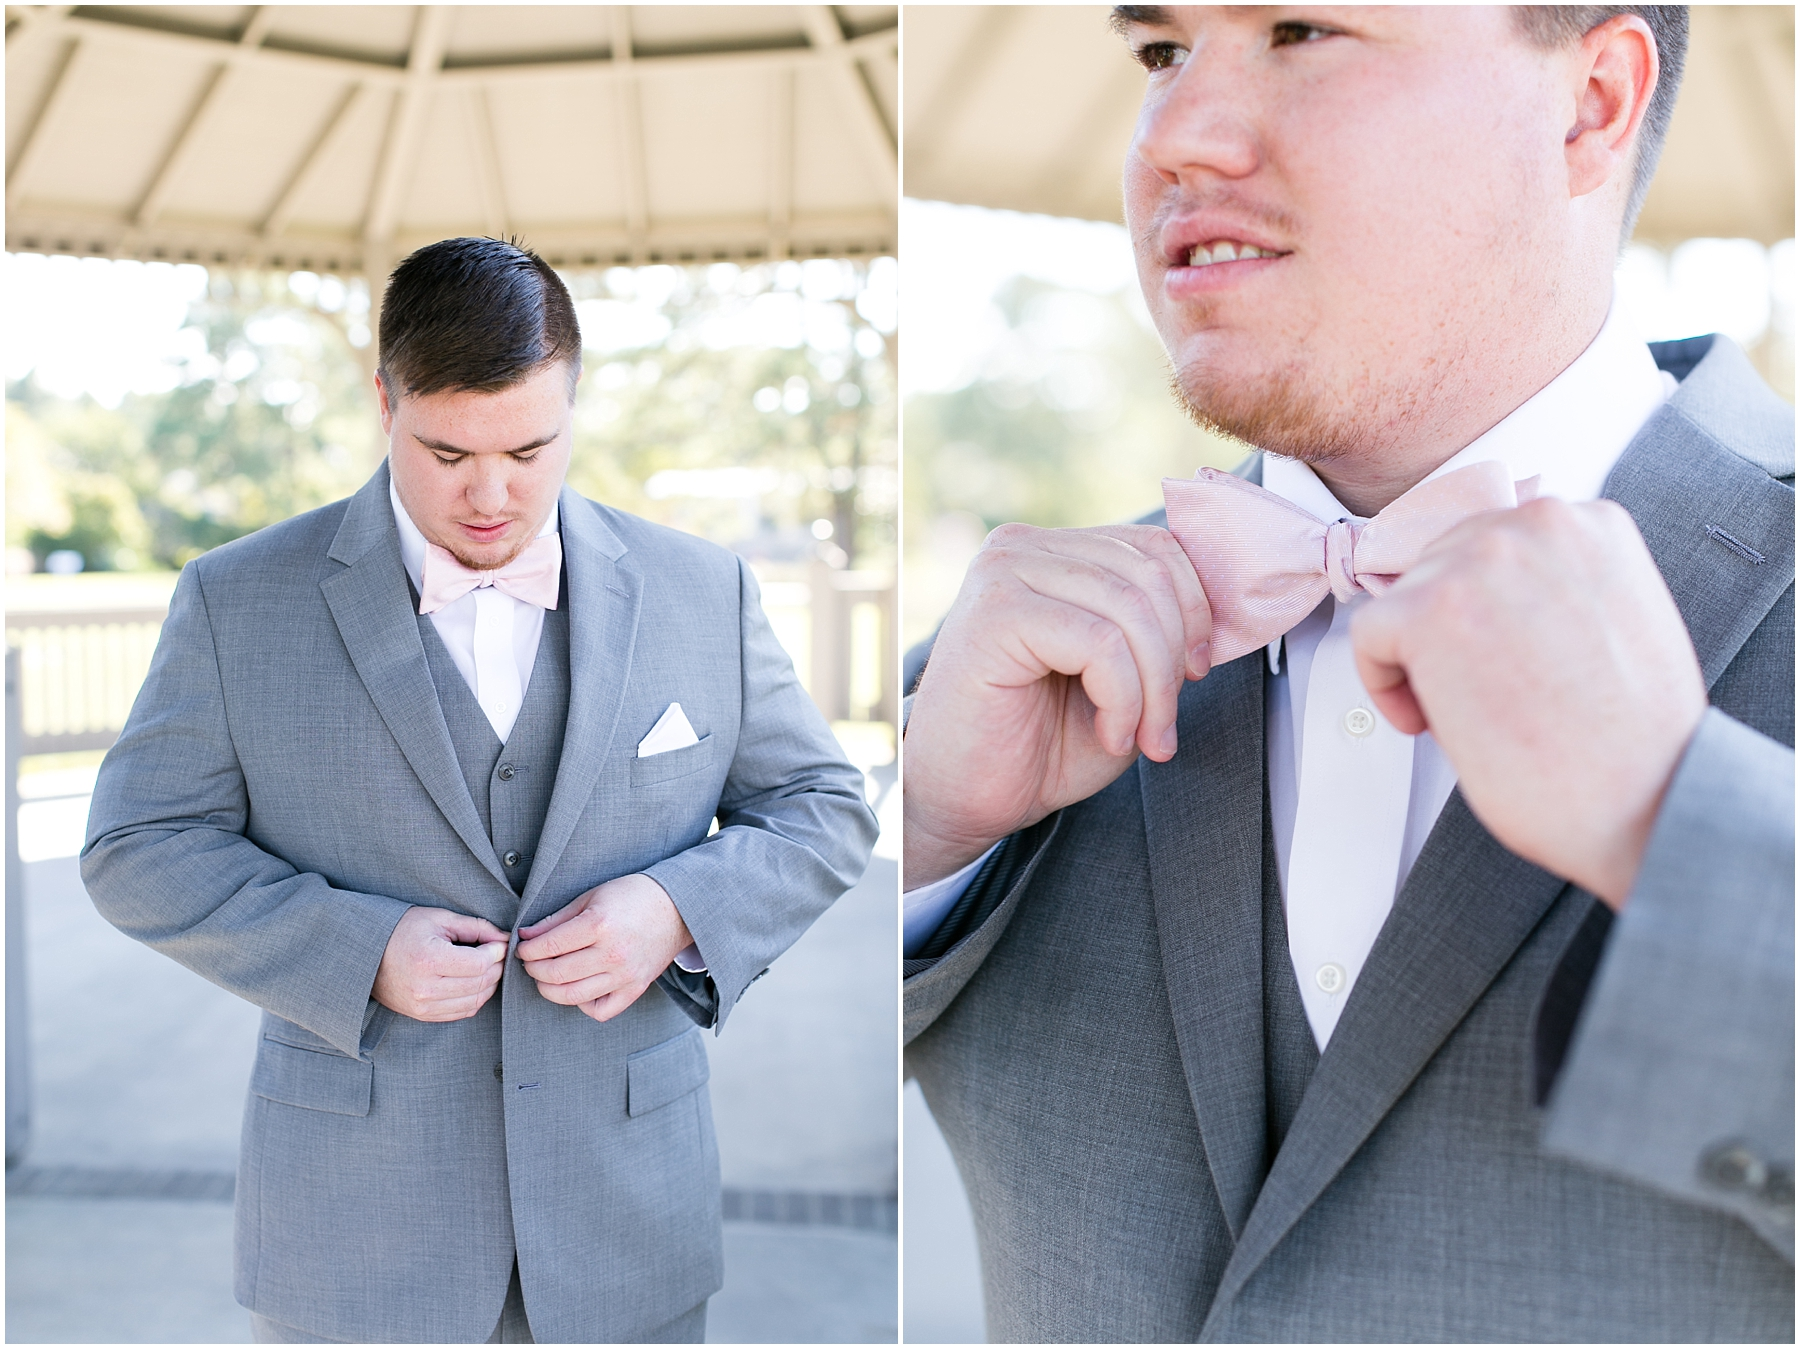 groom getting ready at norfolk botanical gardens wedding day, candid wedding photography, jessica ryan photography